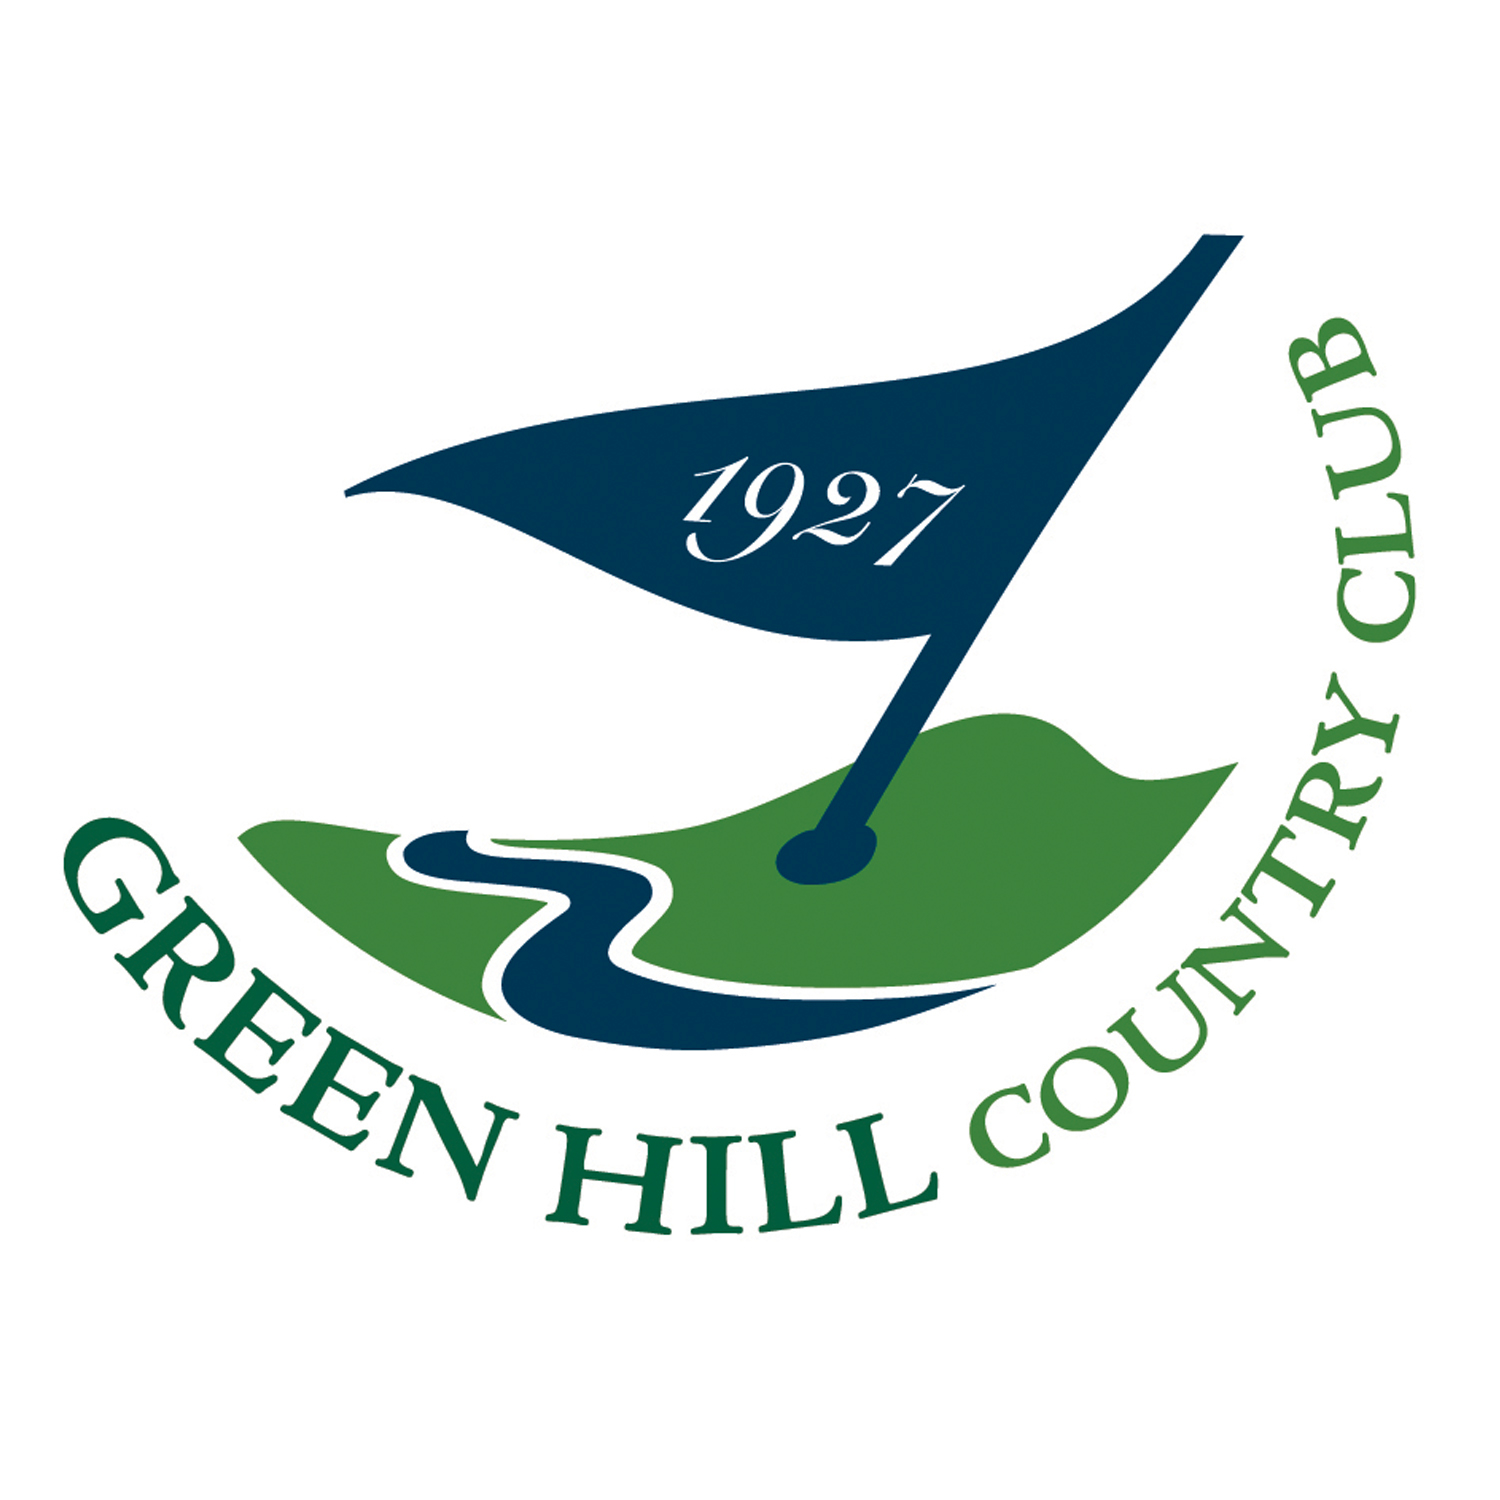 Green Hill Country Club image 4